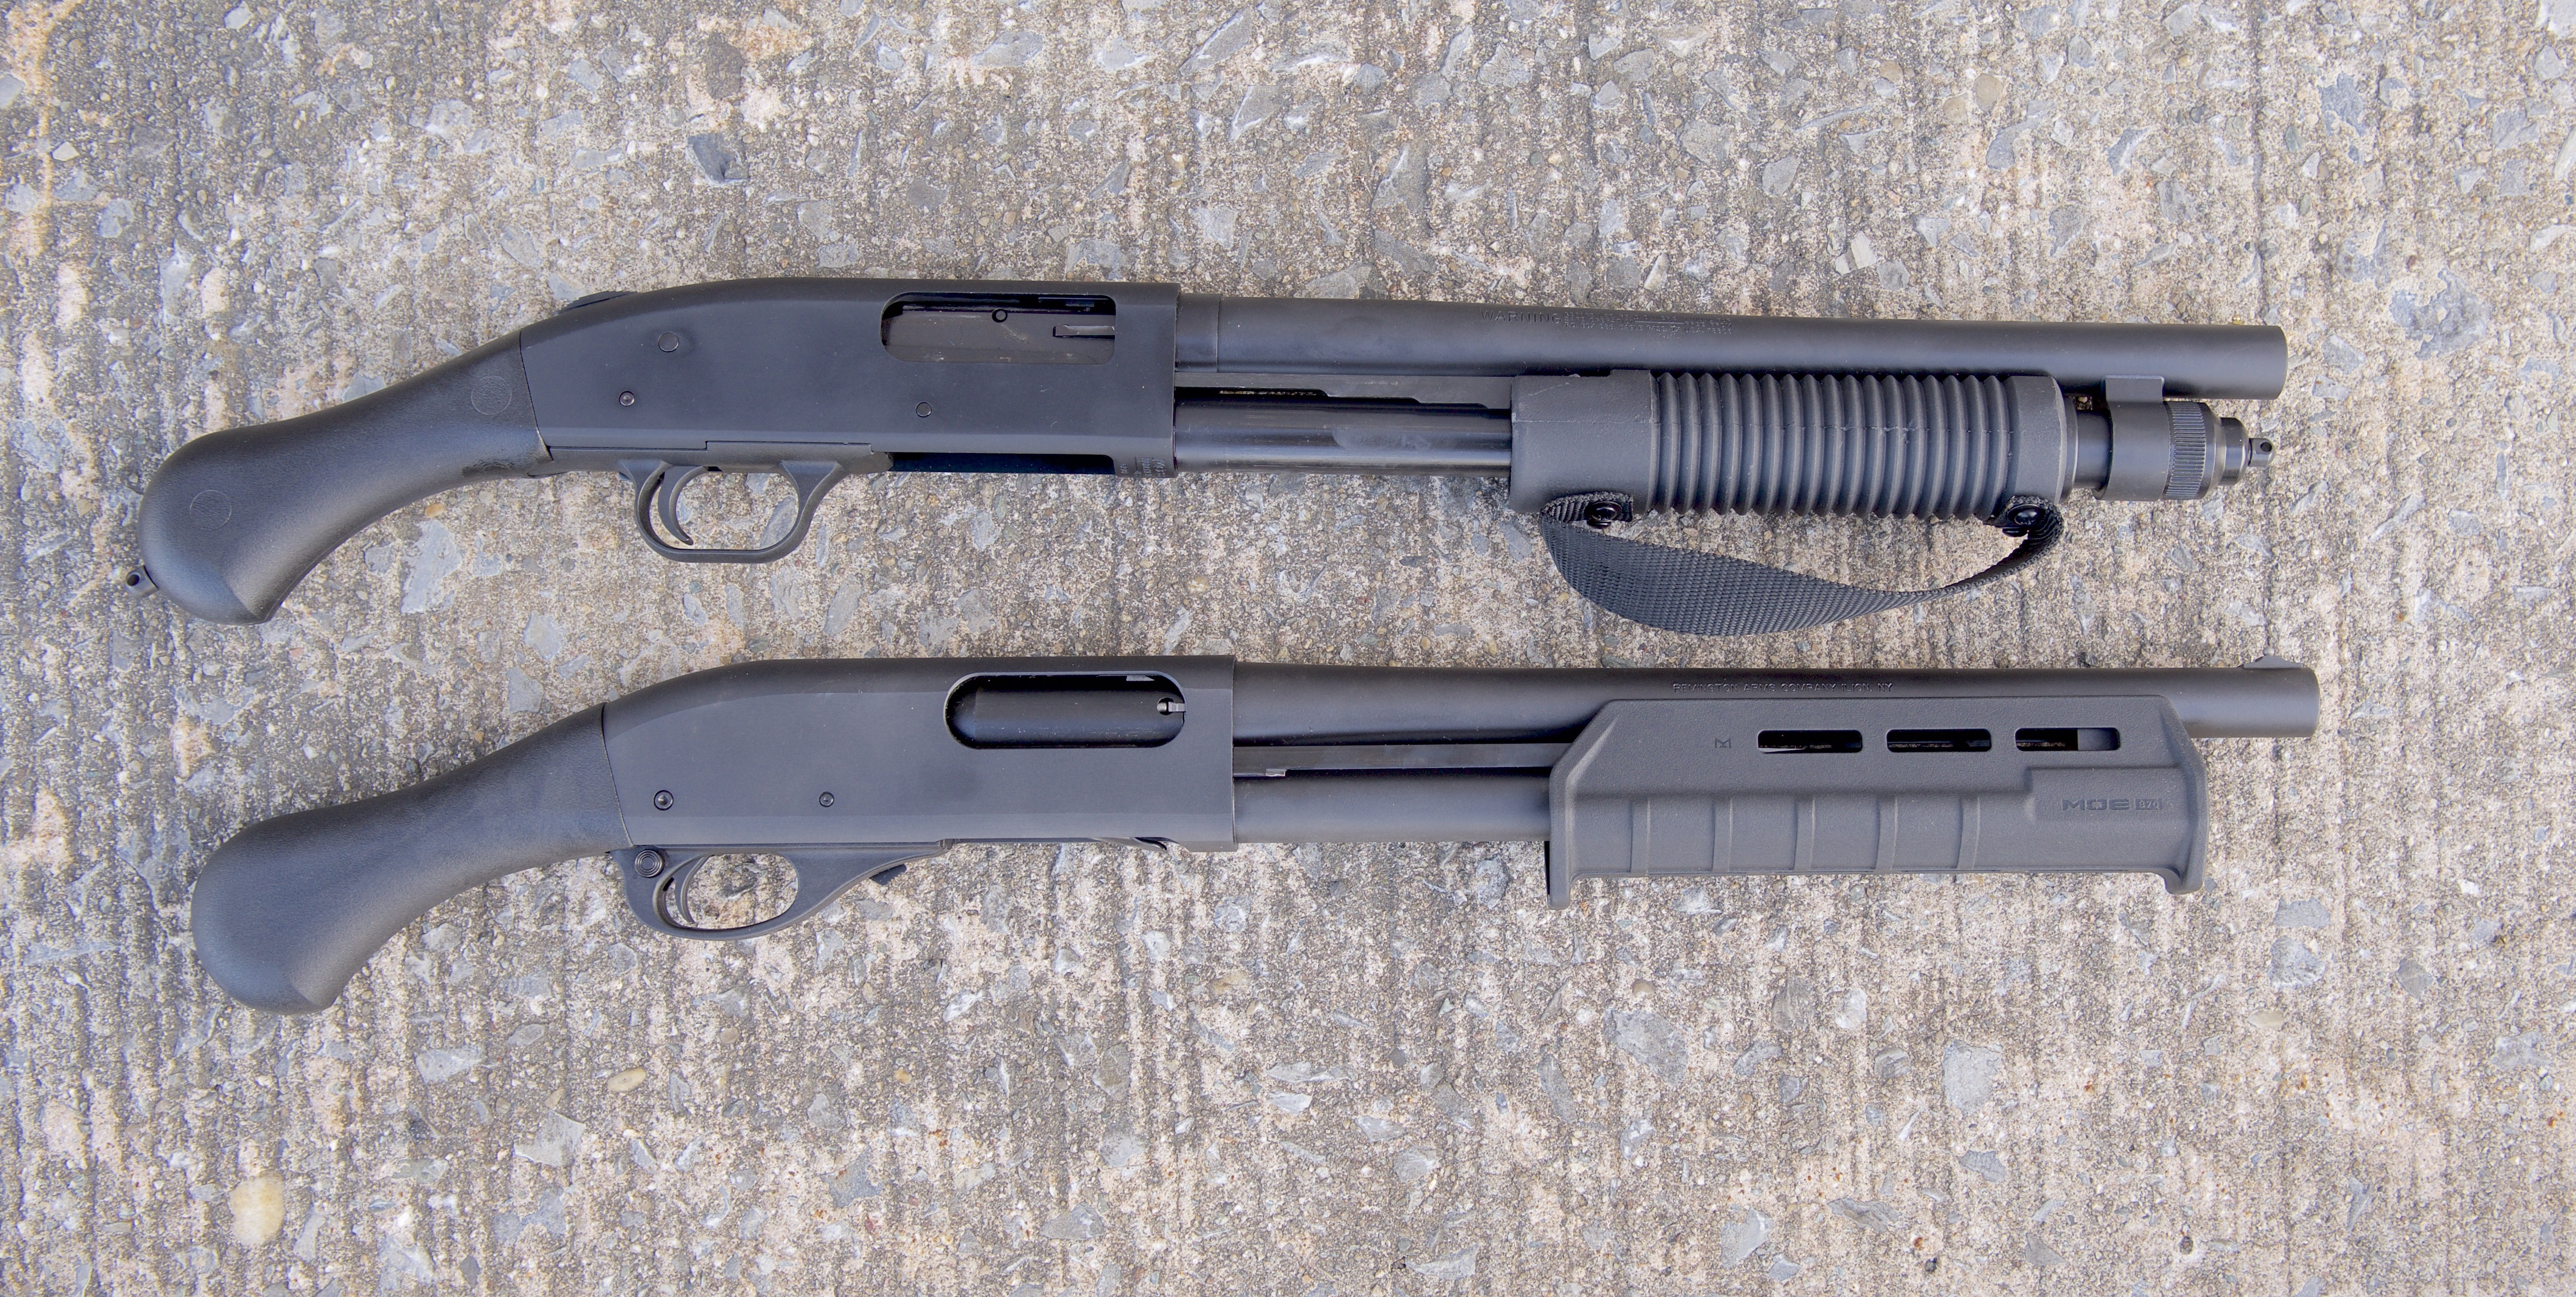 Stock Options For Remington 870  azlaserclinicnet